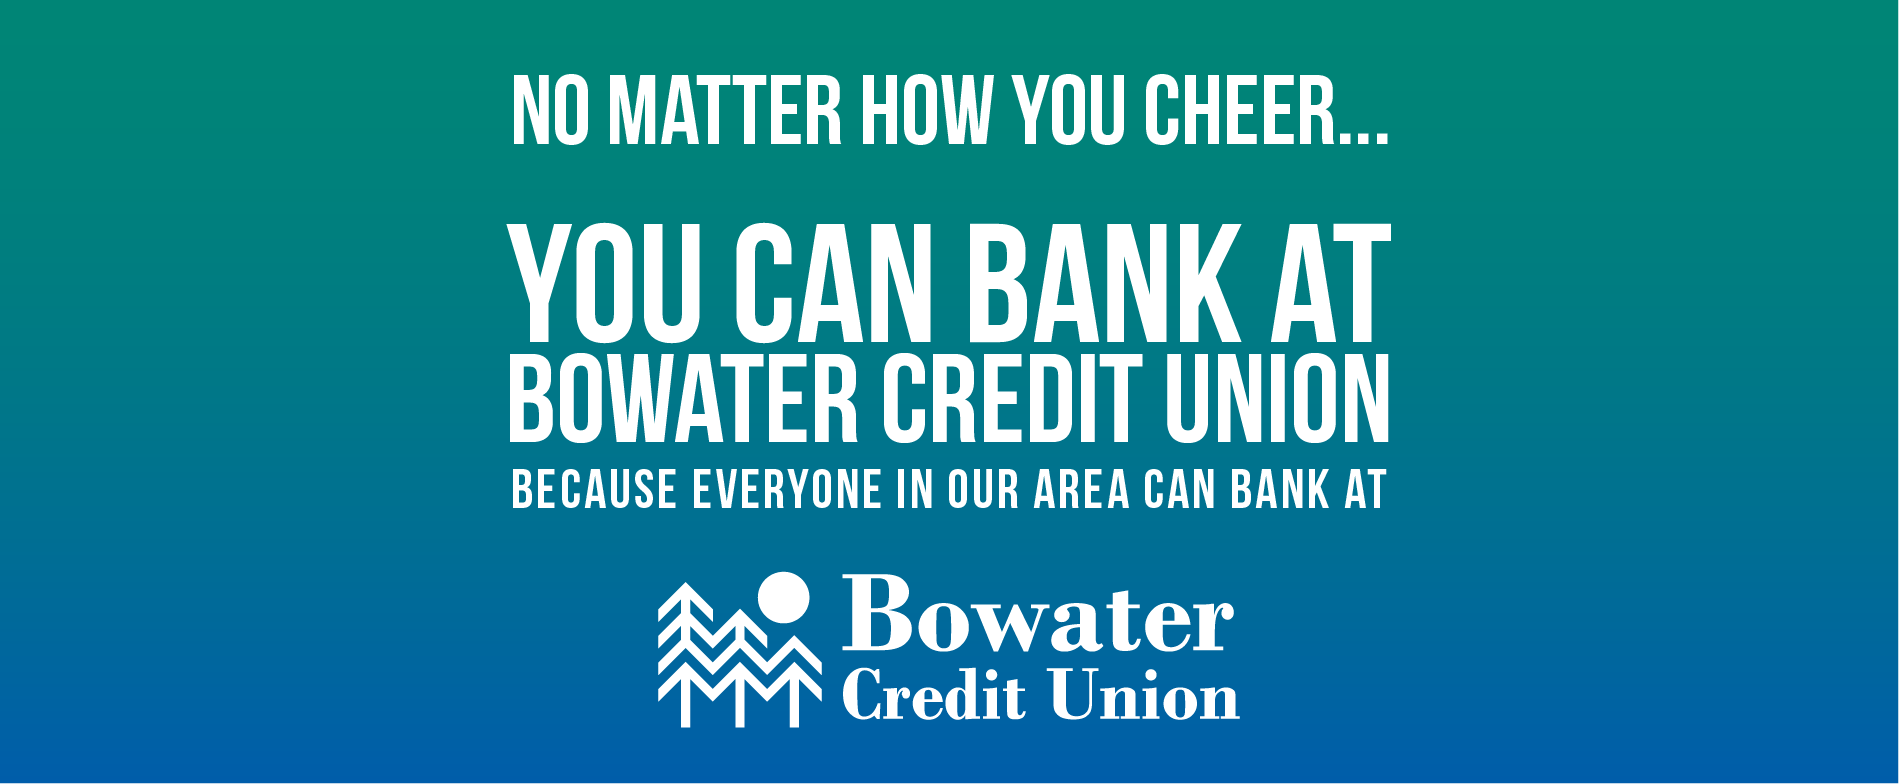 You can bank at Bowater Credit Union